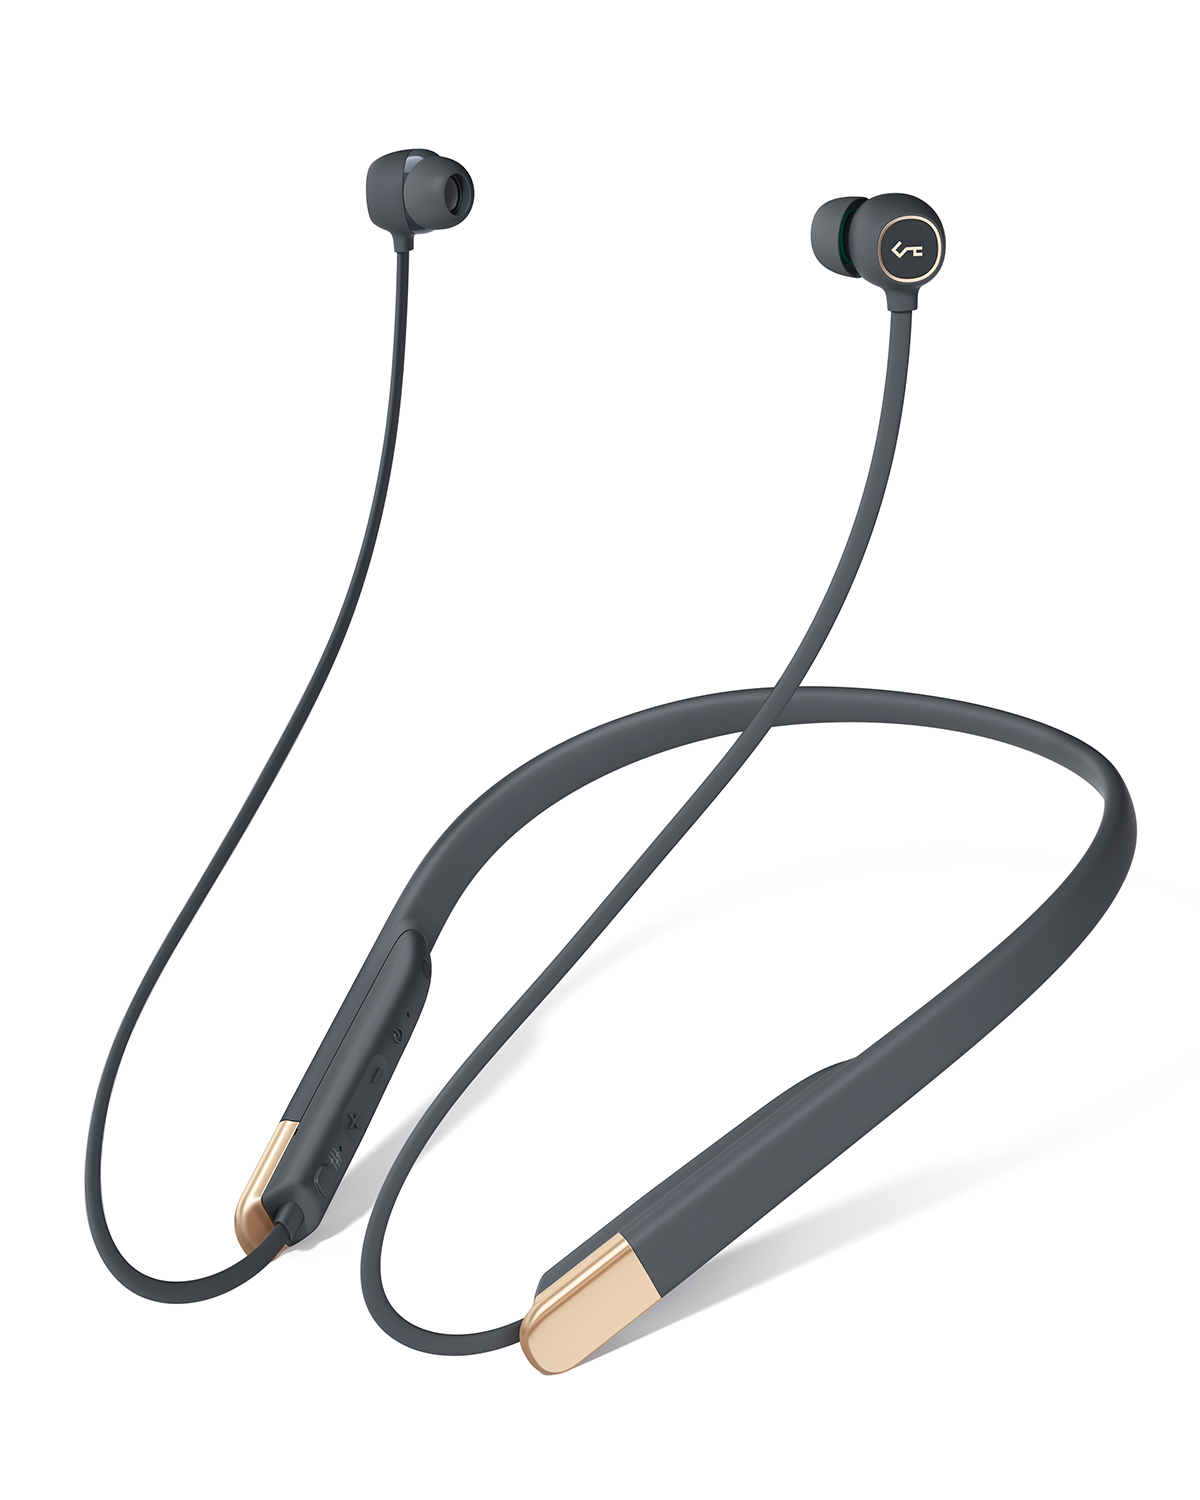 EP-B33 Neckband Wireless Earbuds